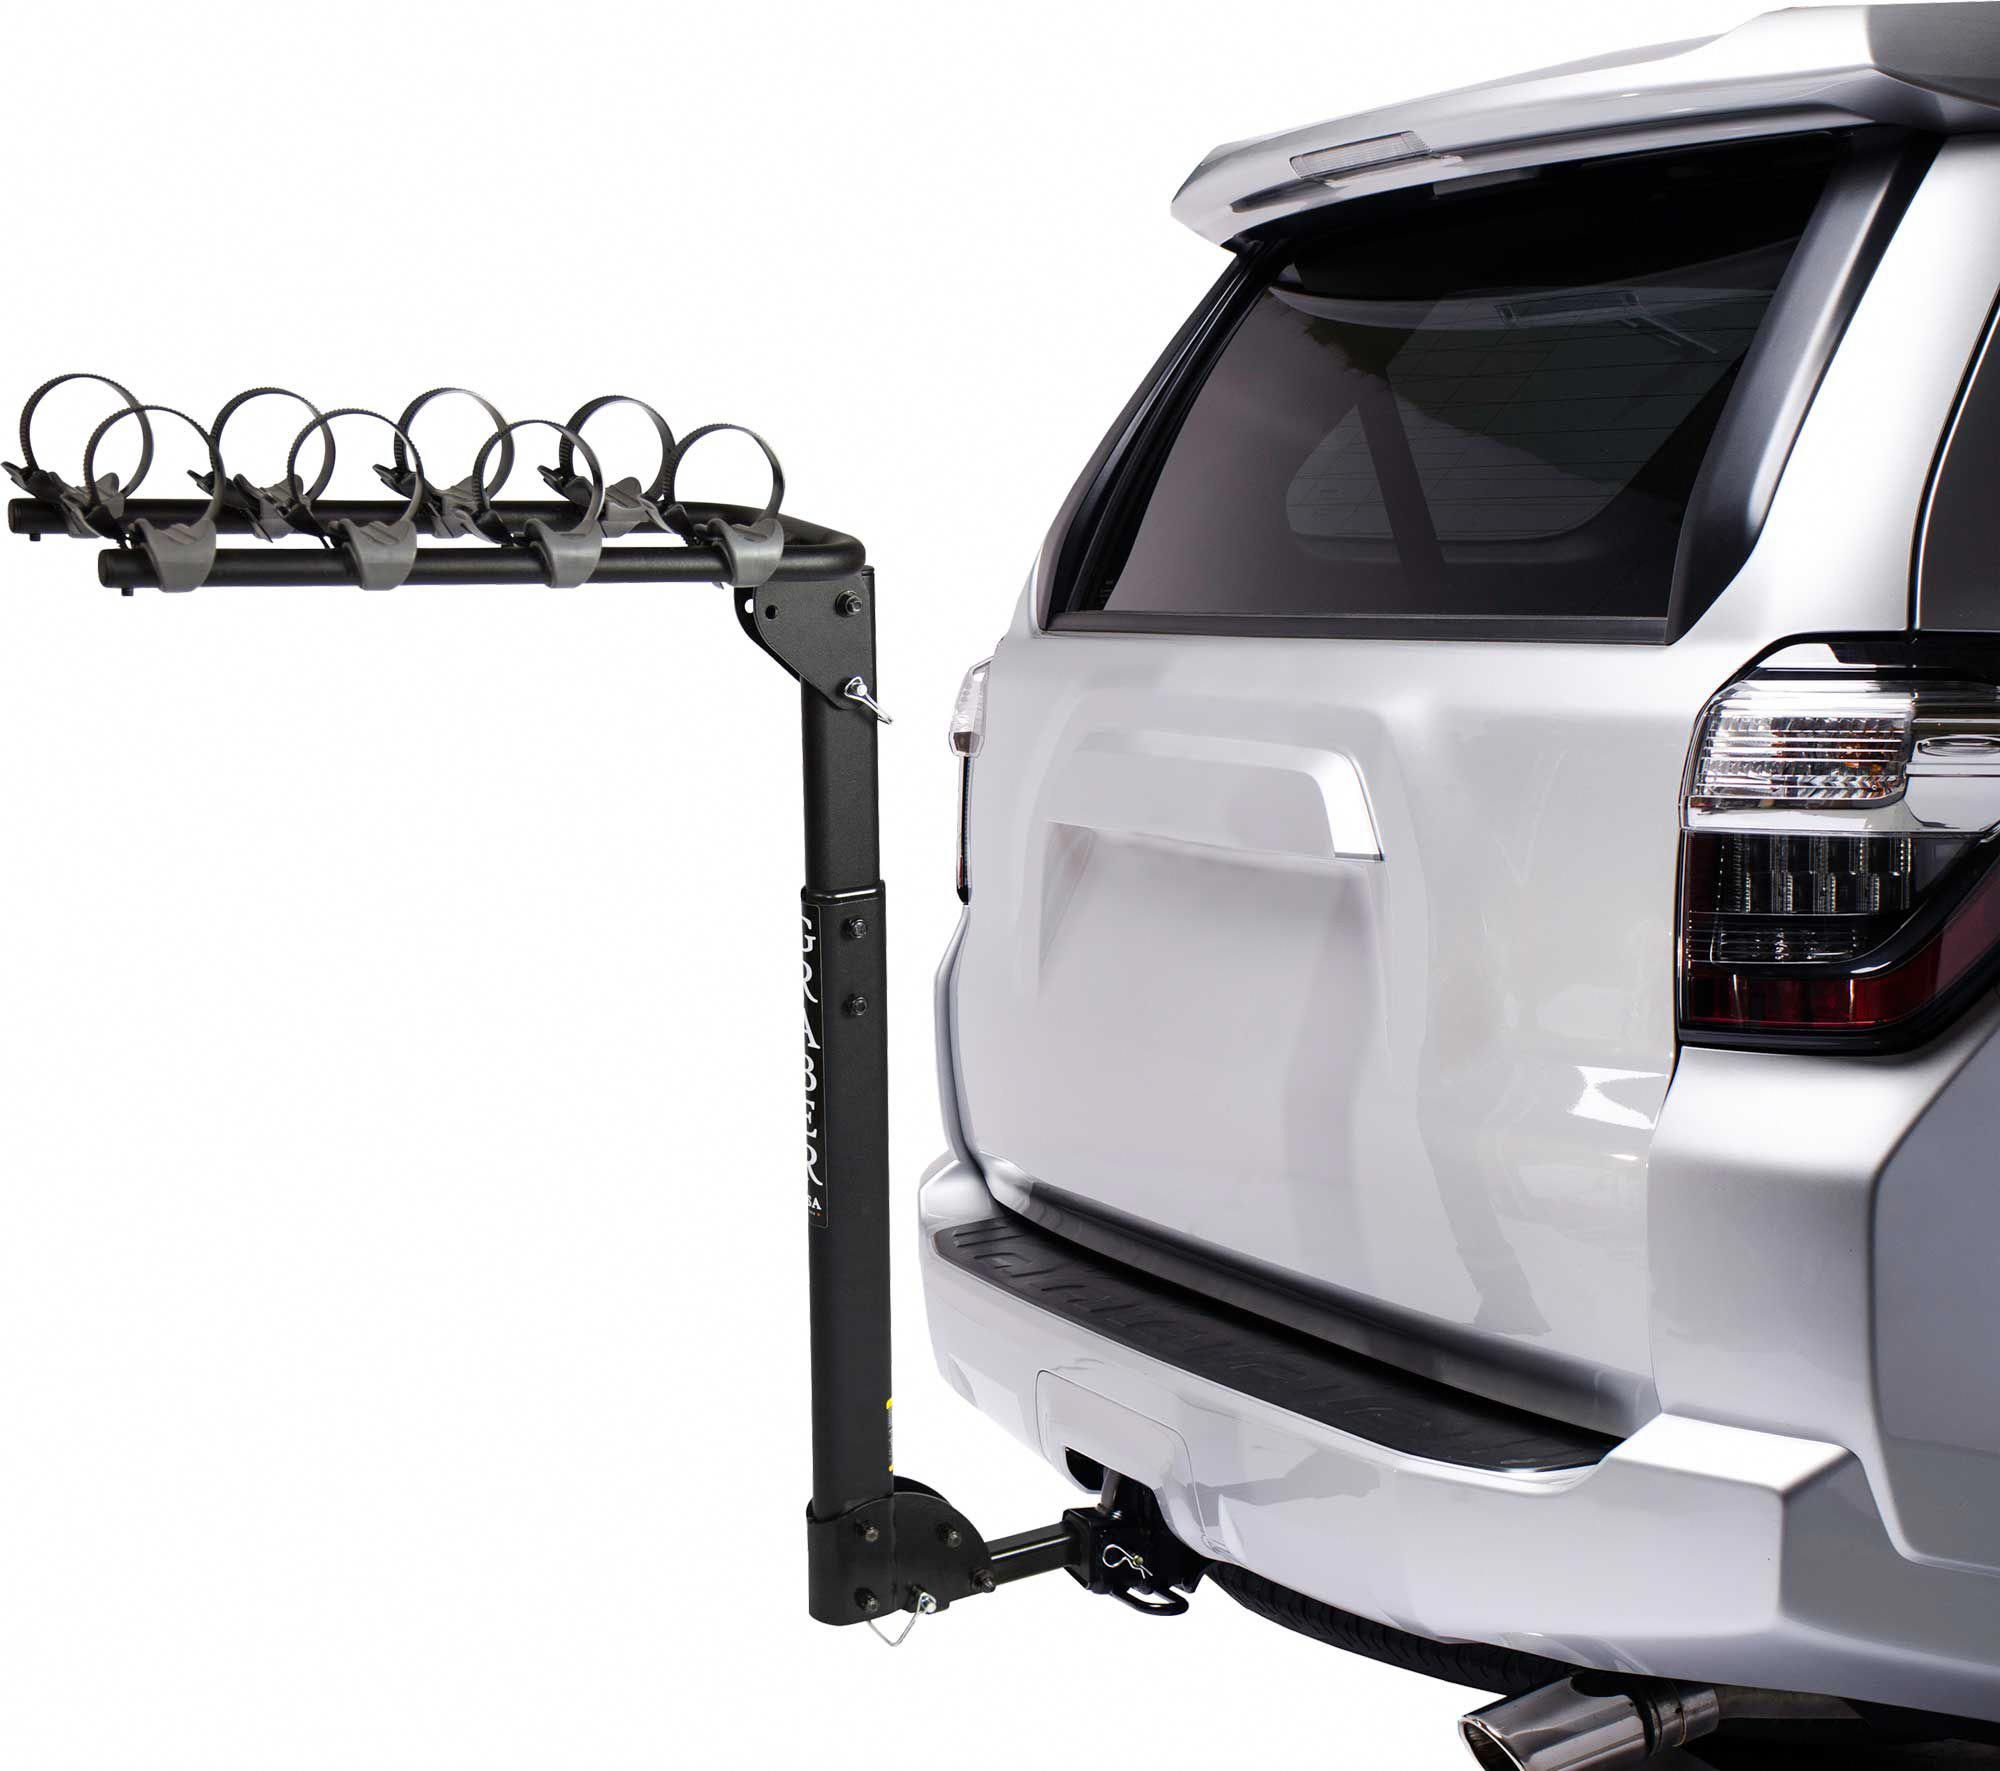 Types Of Bikes With Images Bike Hitch Bike Rack Bicycle